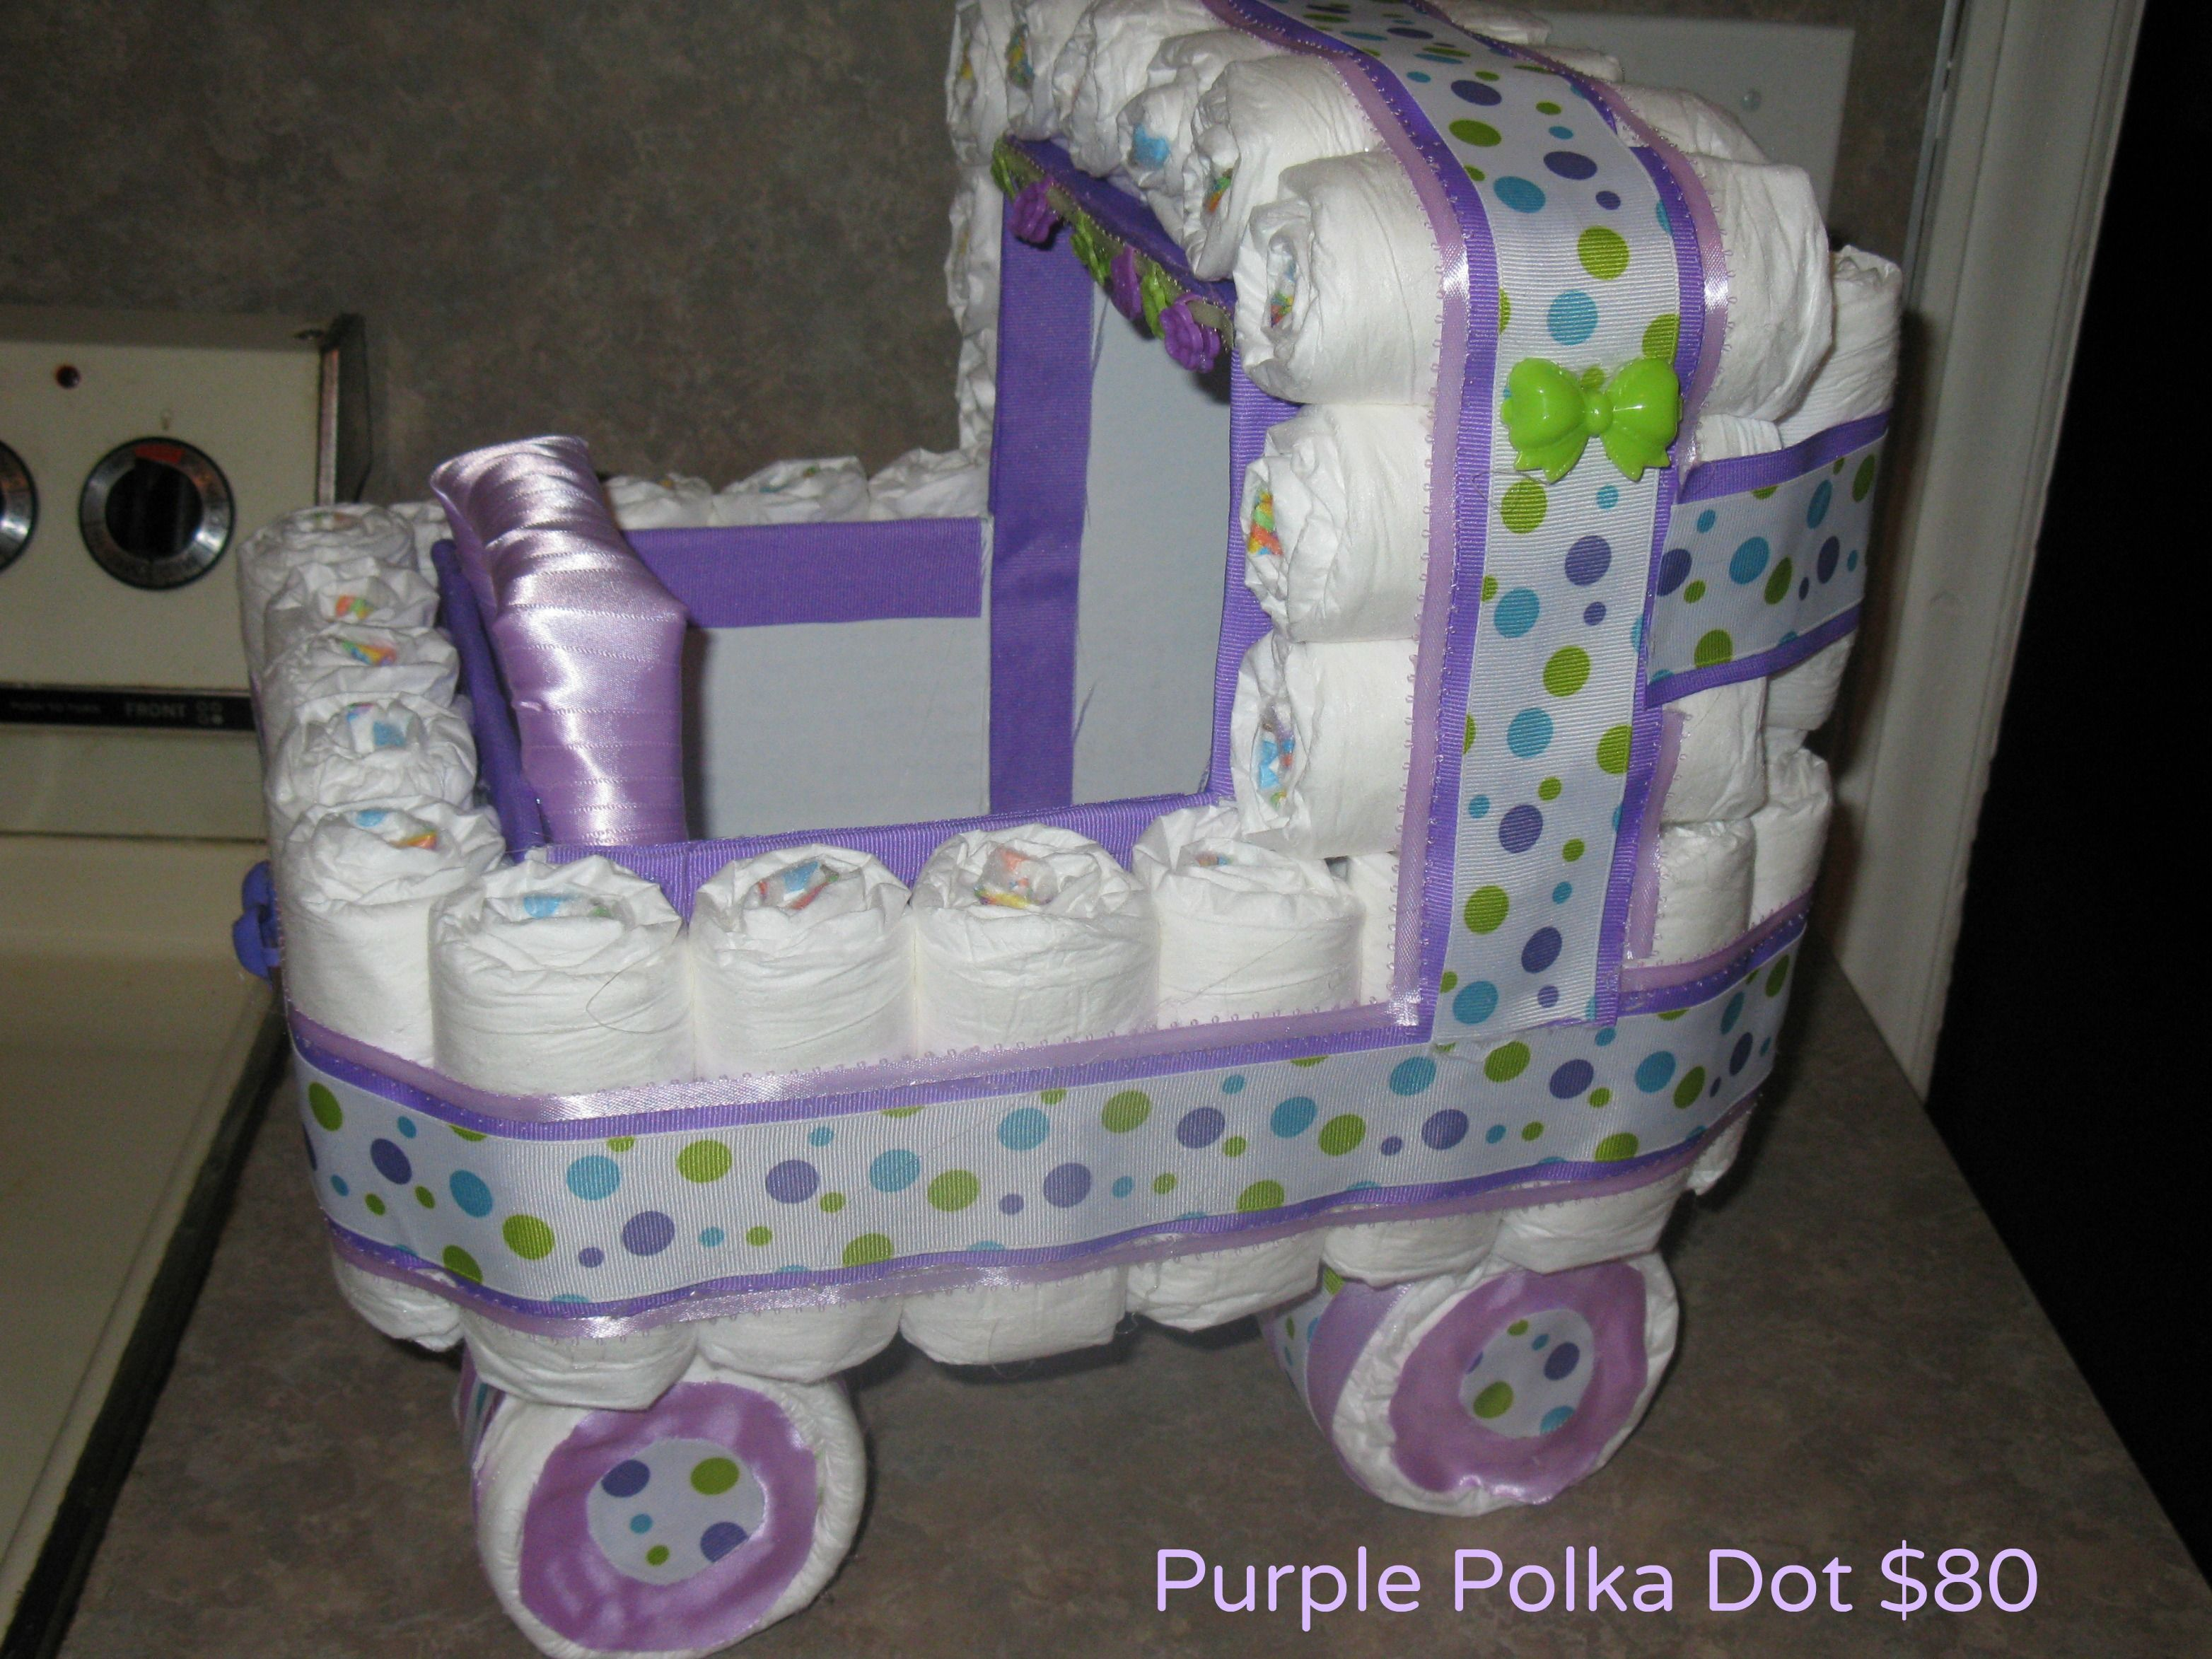 Purple Polka Dot Diaper Stroller The Giftbasket Genie Pinterest